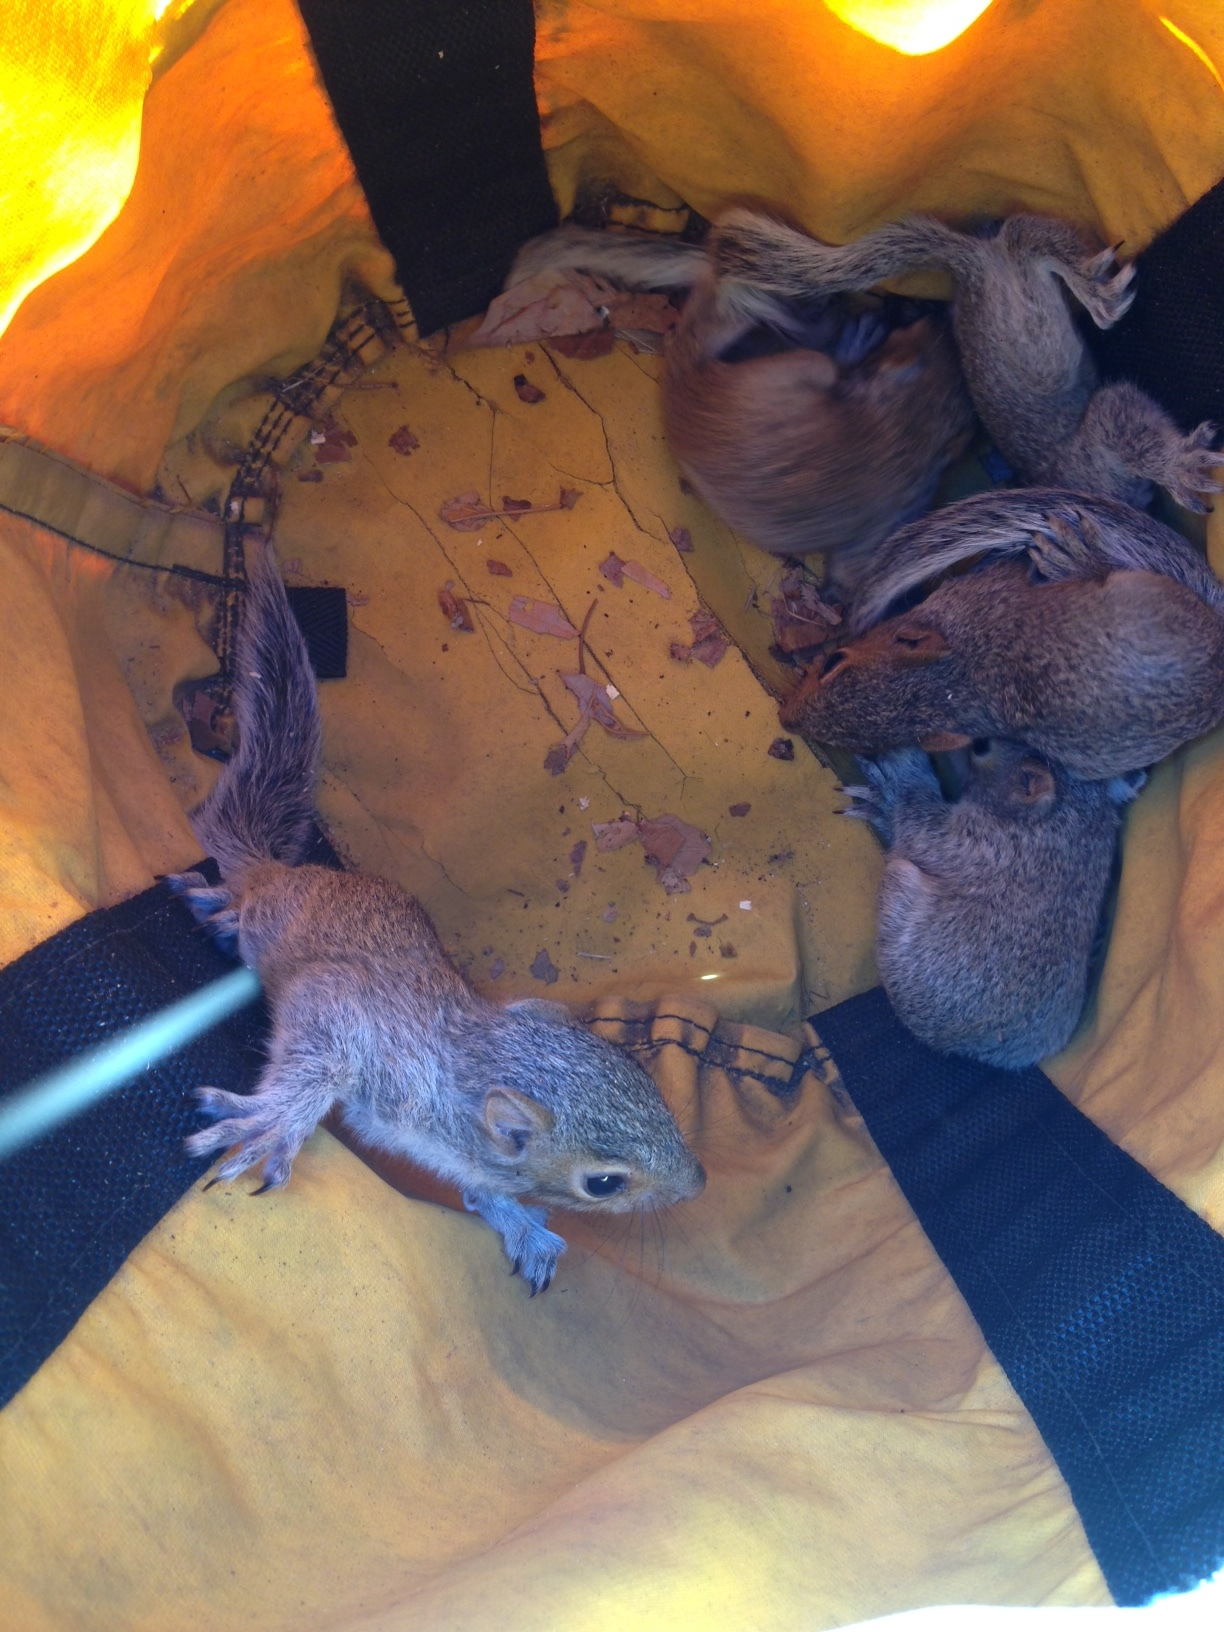 The crew quickly developed a plan to evacuate the baby squirrels, placing them into a large canvas rope bag, then lowering them from the tree into a temporary nest nearby.